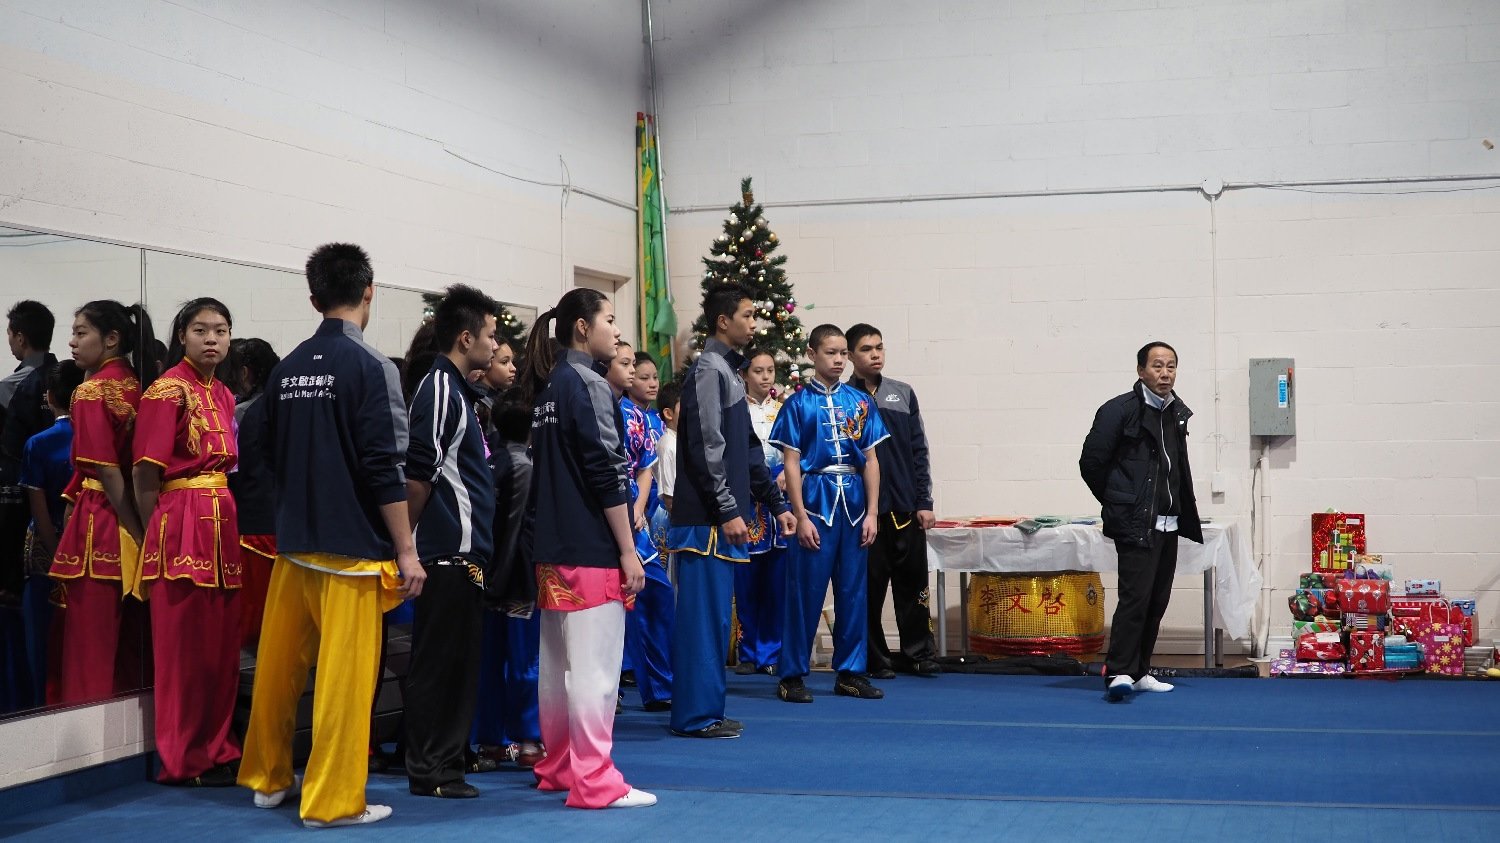 wayland-li-wushu-canada-ontario-toronto-classes-taolu-holiday-party-2017-26.jpg